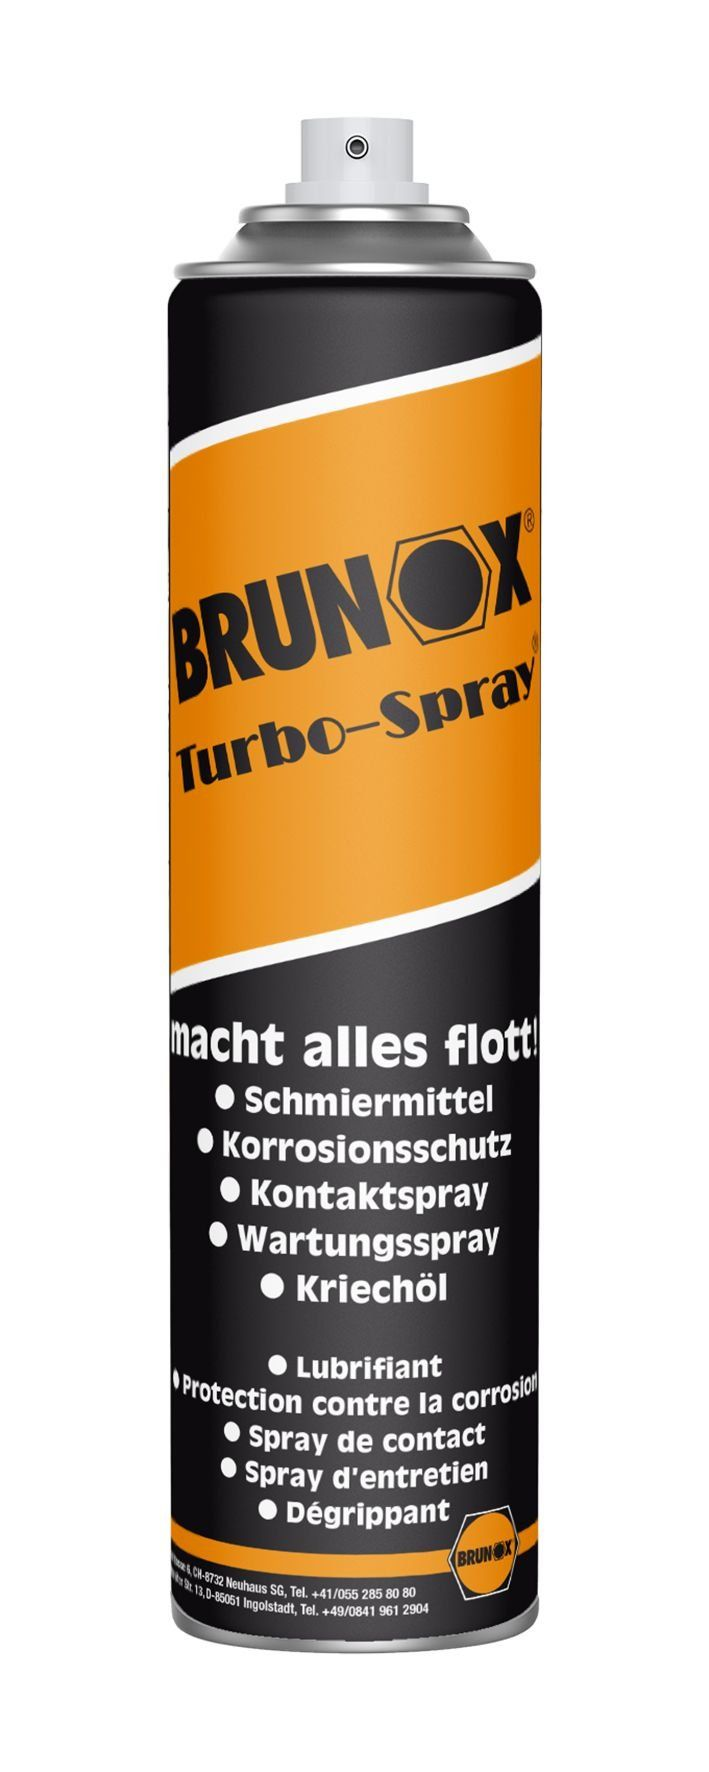 seidel_empfehlungen_brunox_turbo_spray